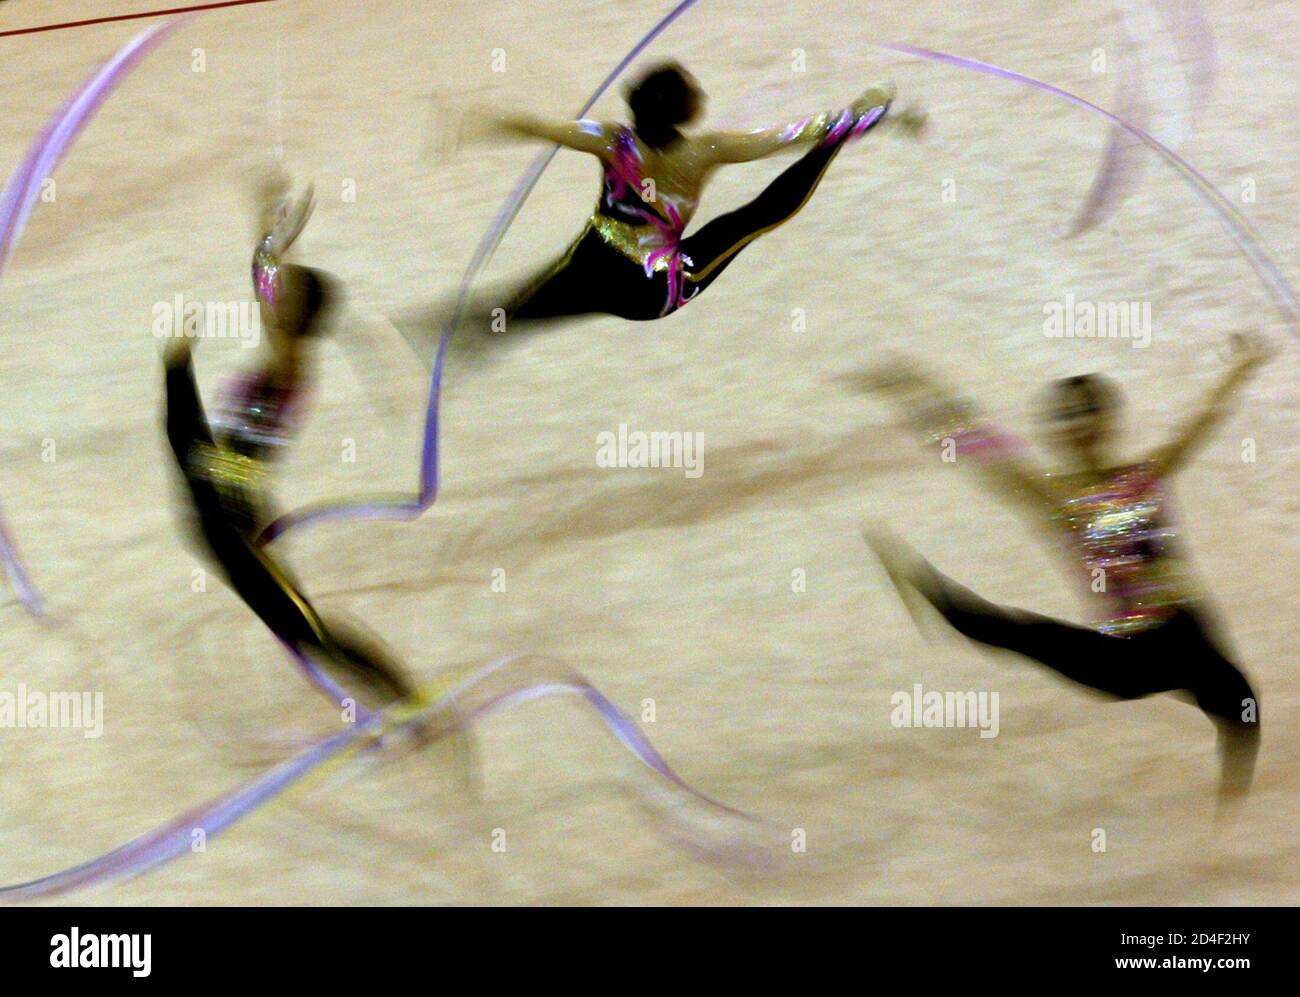 SOUTH KOREAN PLAYERS PERFORM DURING THE FINAL OF RYTHMIC GYMNASTICS AT THE UNIVERSIADE GAMES IN KYEONGJU. Stock Photo